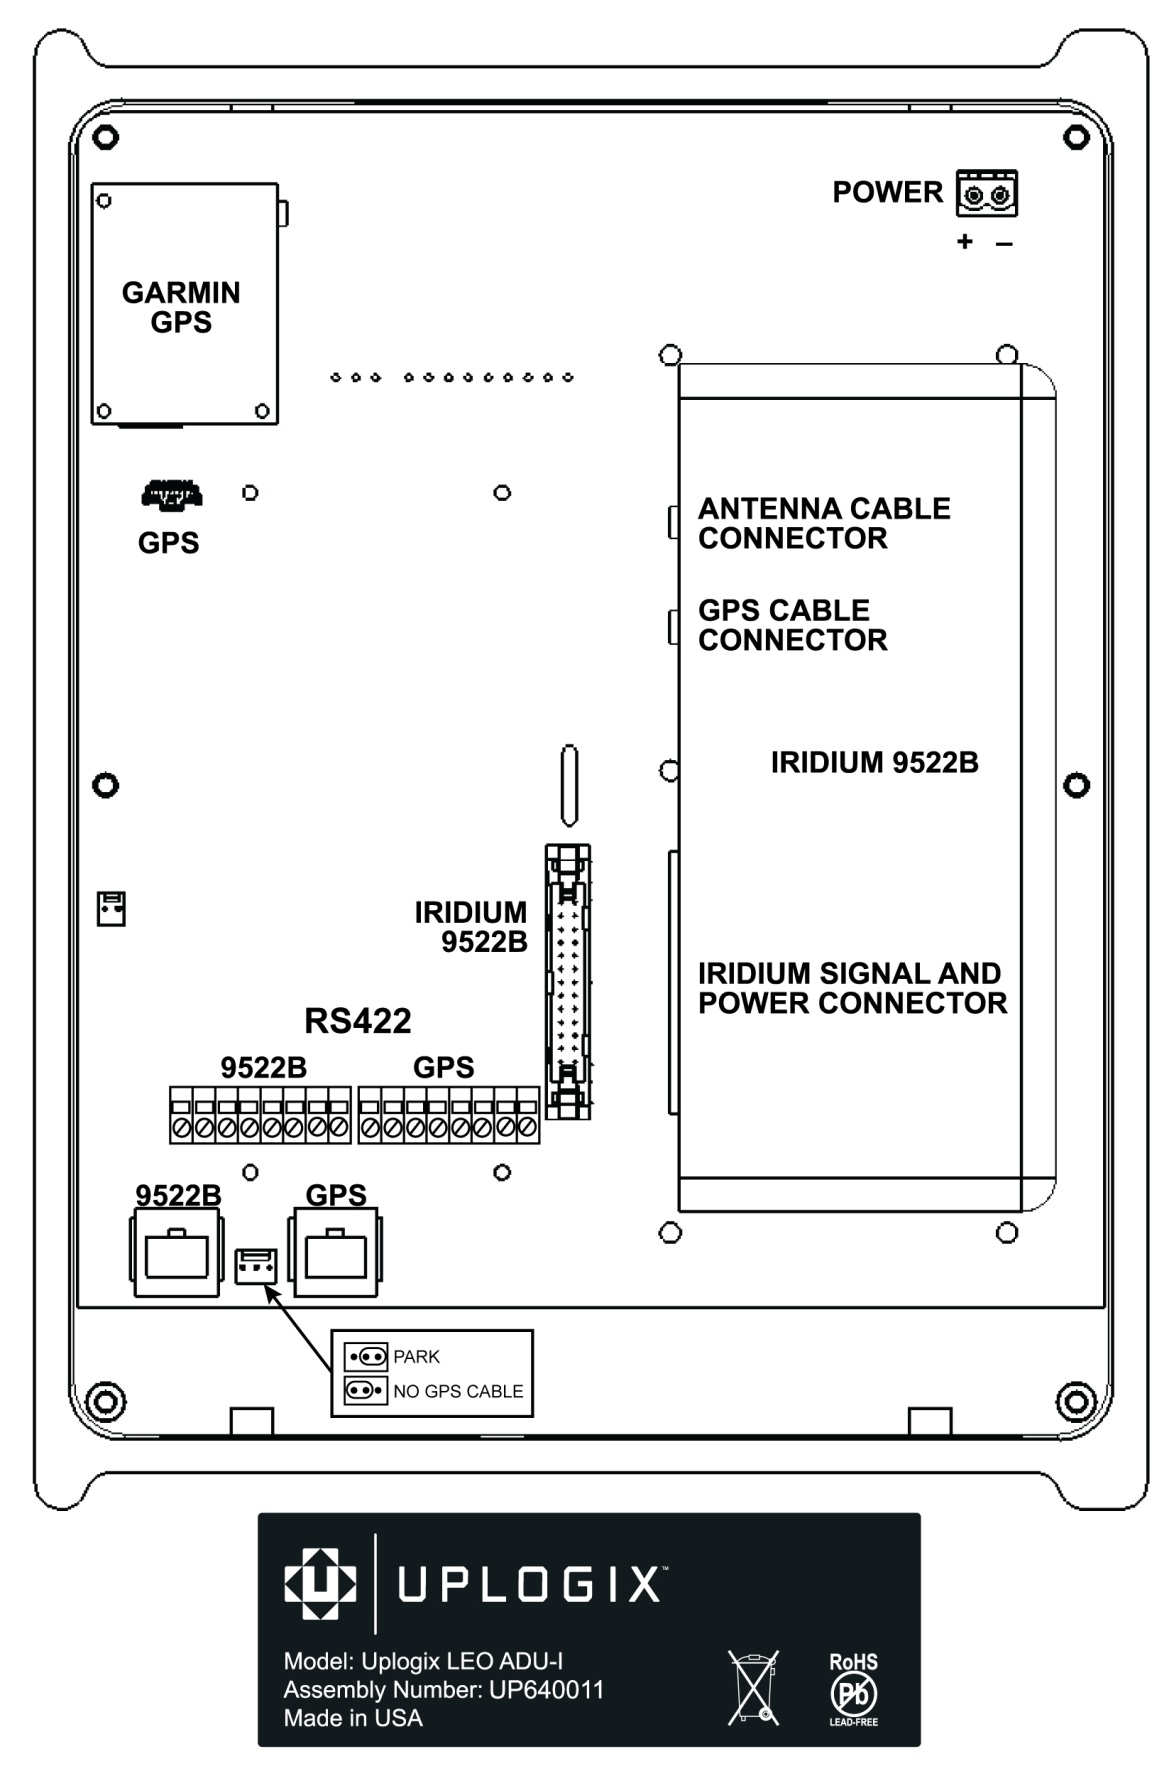 garmin 2010 antenna wiring schematics   37 wiring diagram